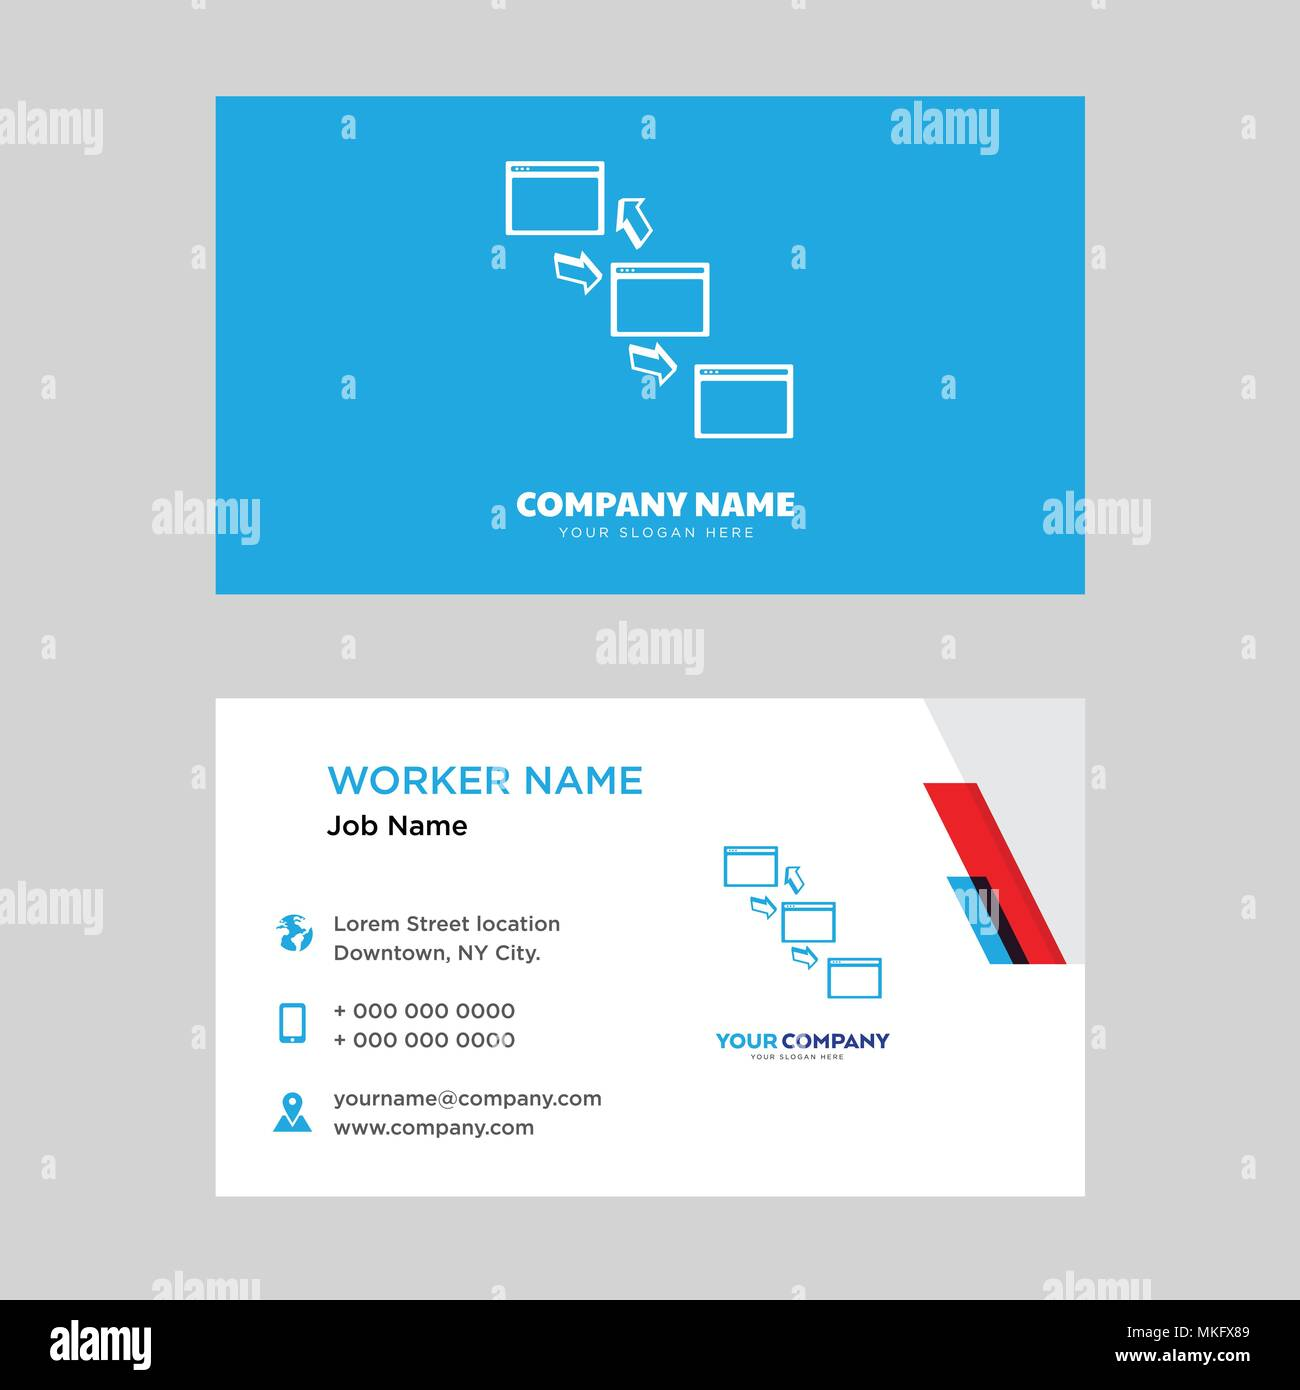 Networking business card design template visiting for your company networking business card design template visiting for your company modern horizontal identity card vector wajeb Choice Image